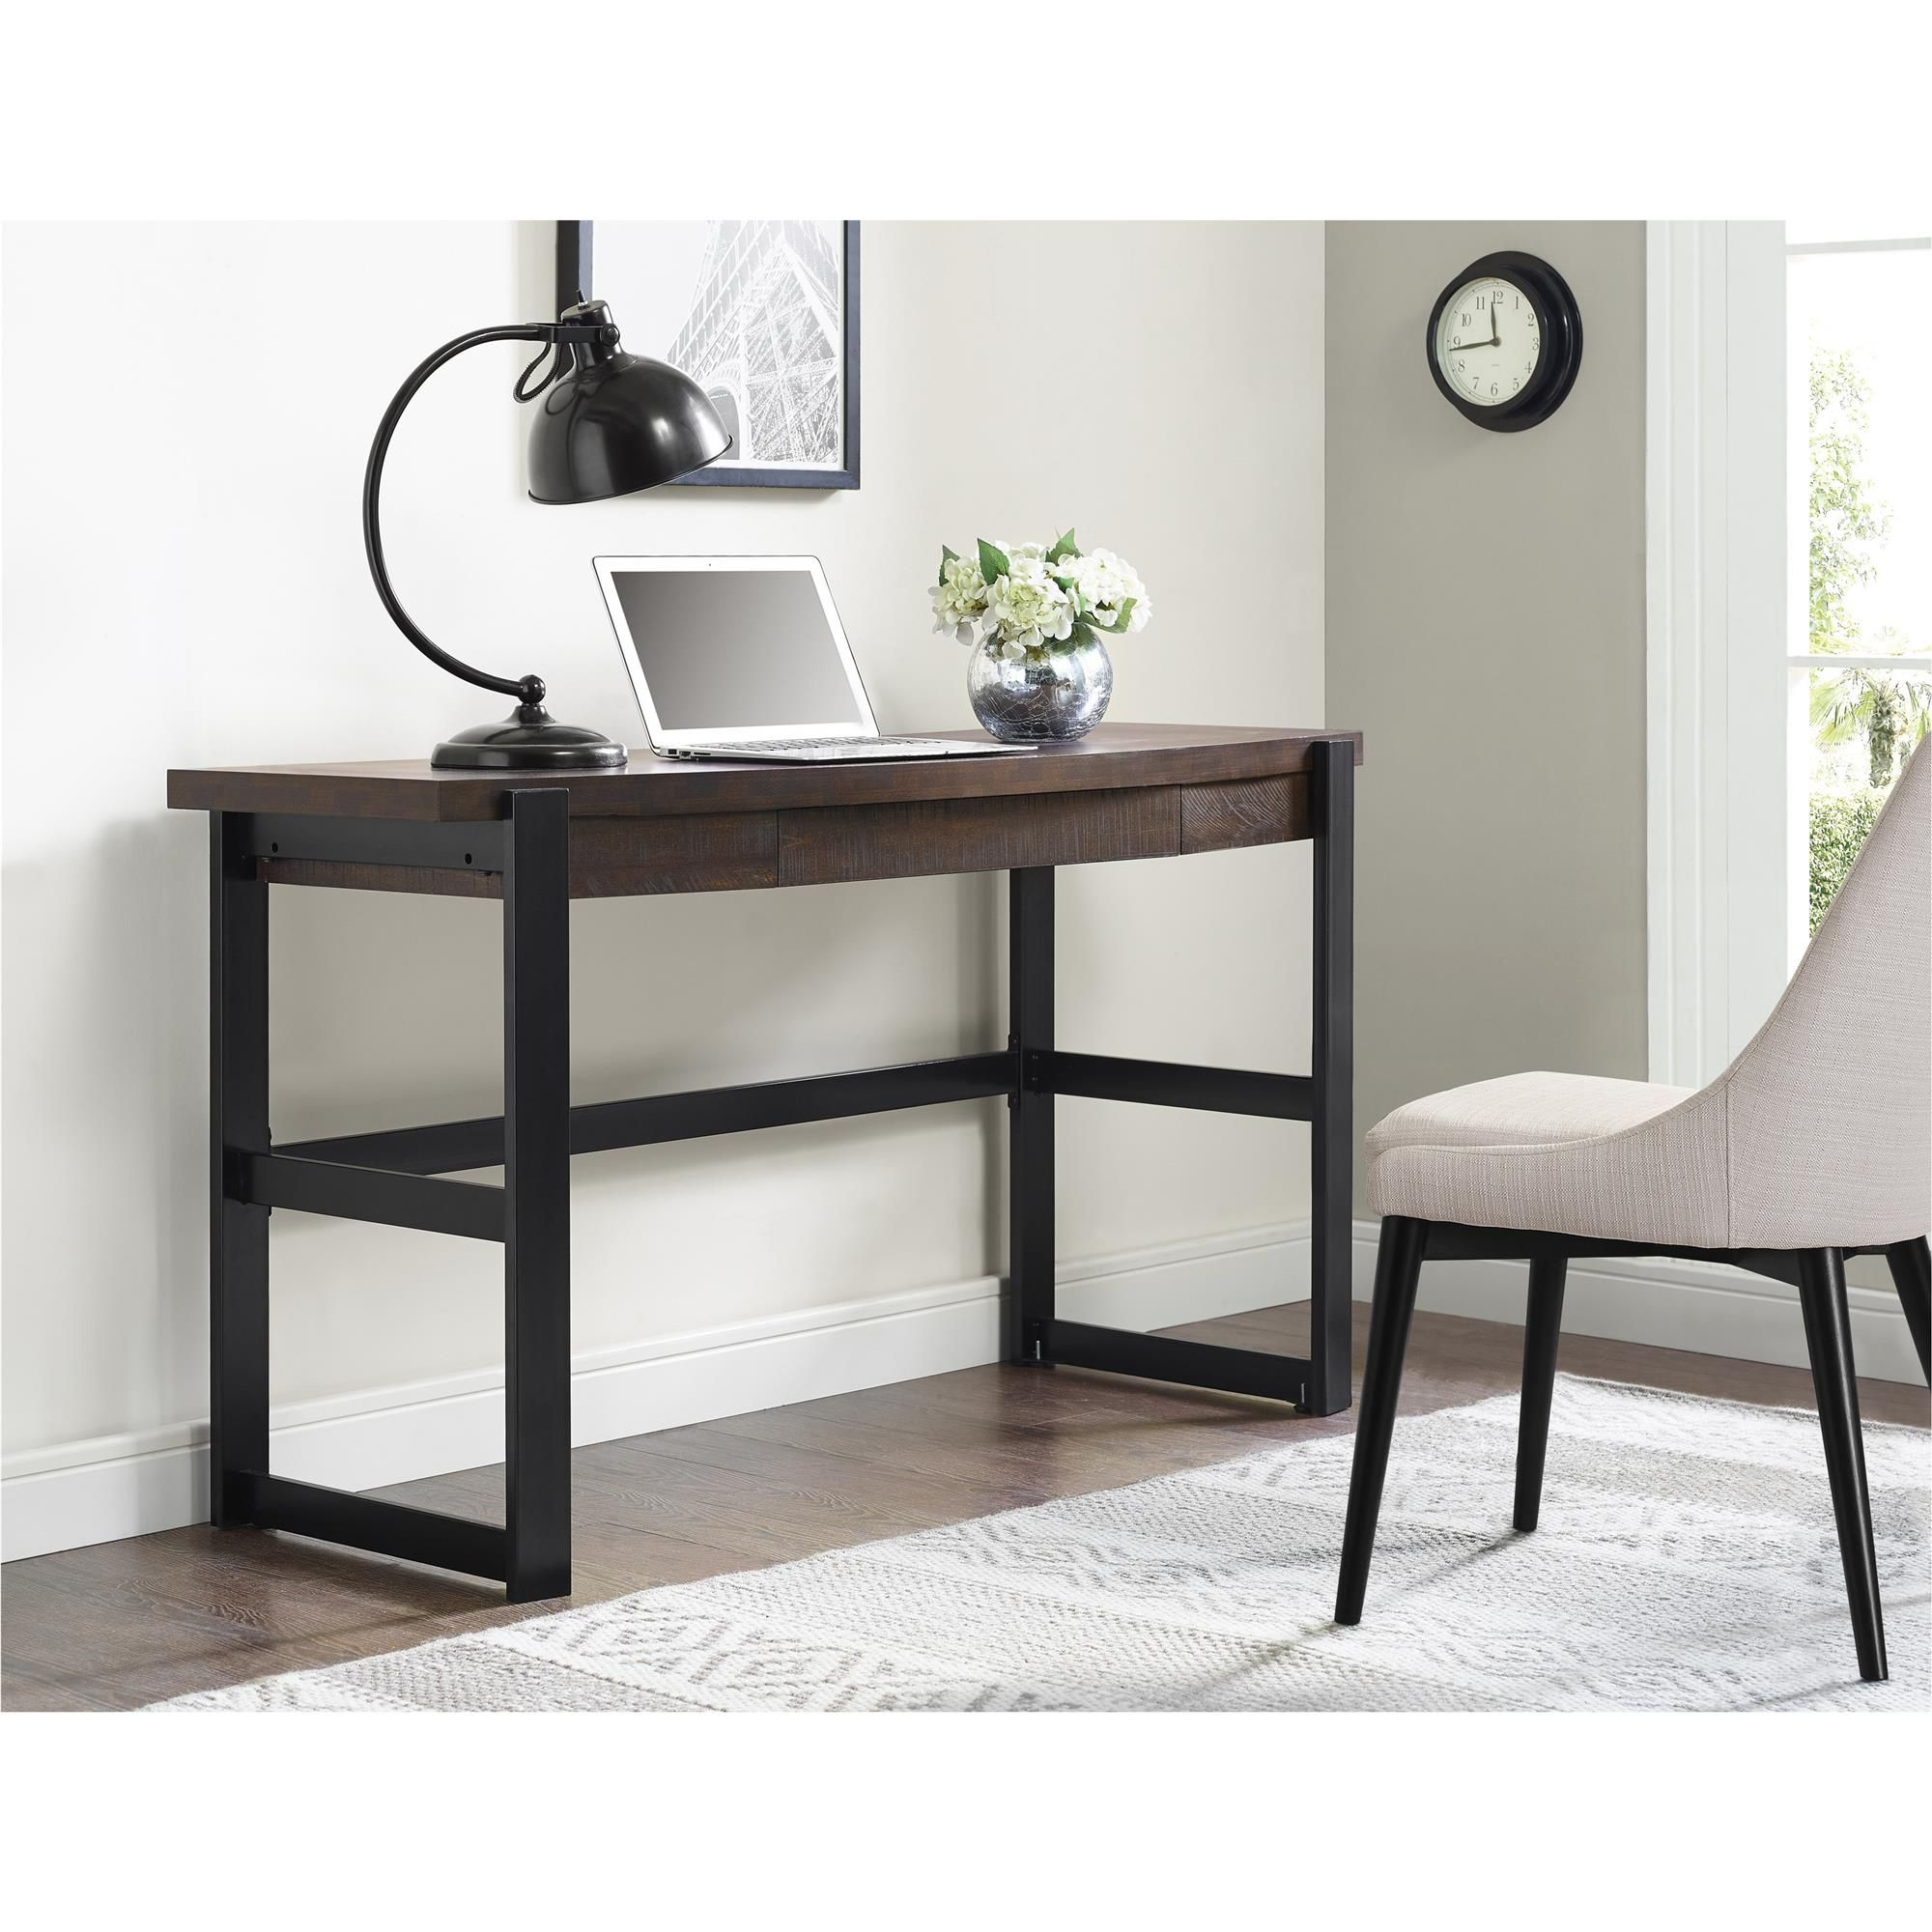 The Castling Desk Is The Perfect Option For Both Large And Small Home Offices This Medium Sized Desk Is Both S Altra Furniture Furniture Home Office Furniture